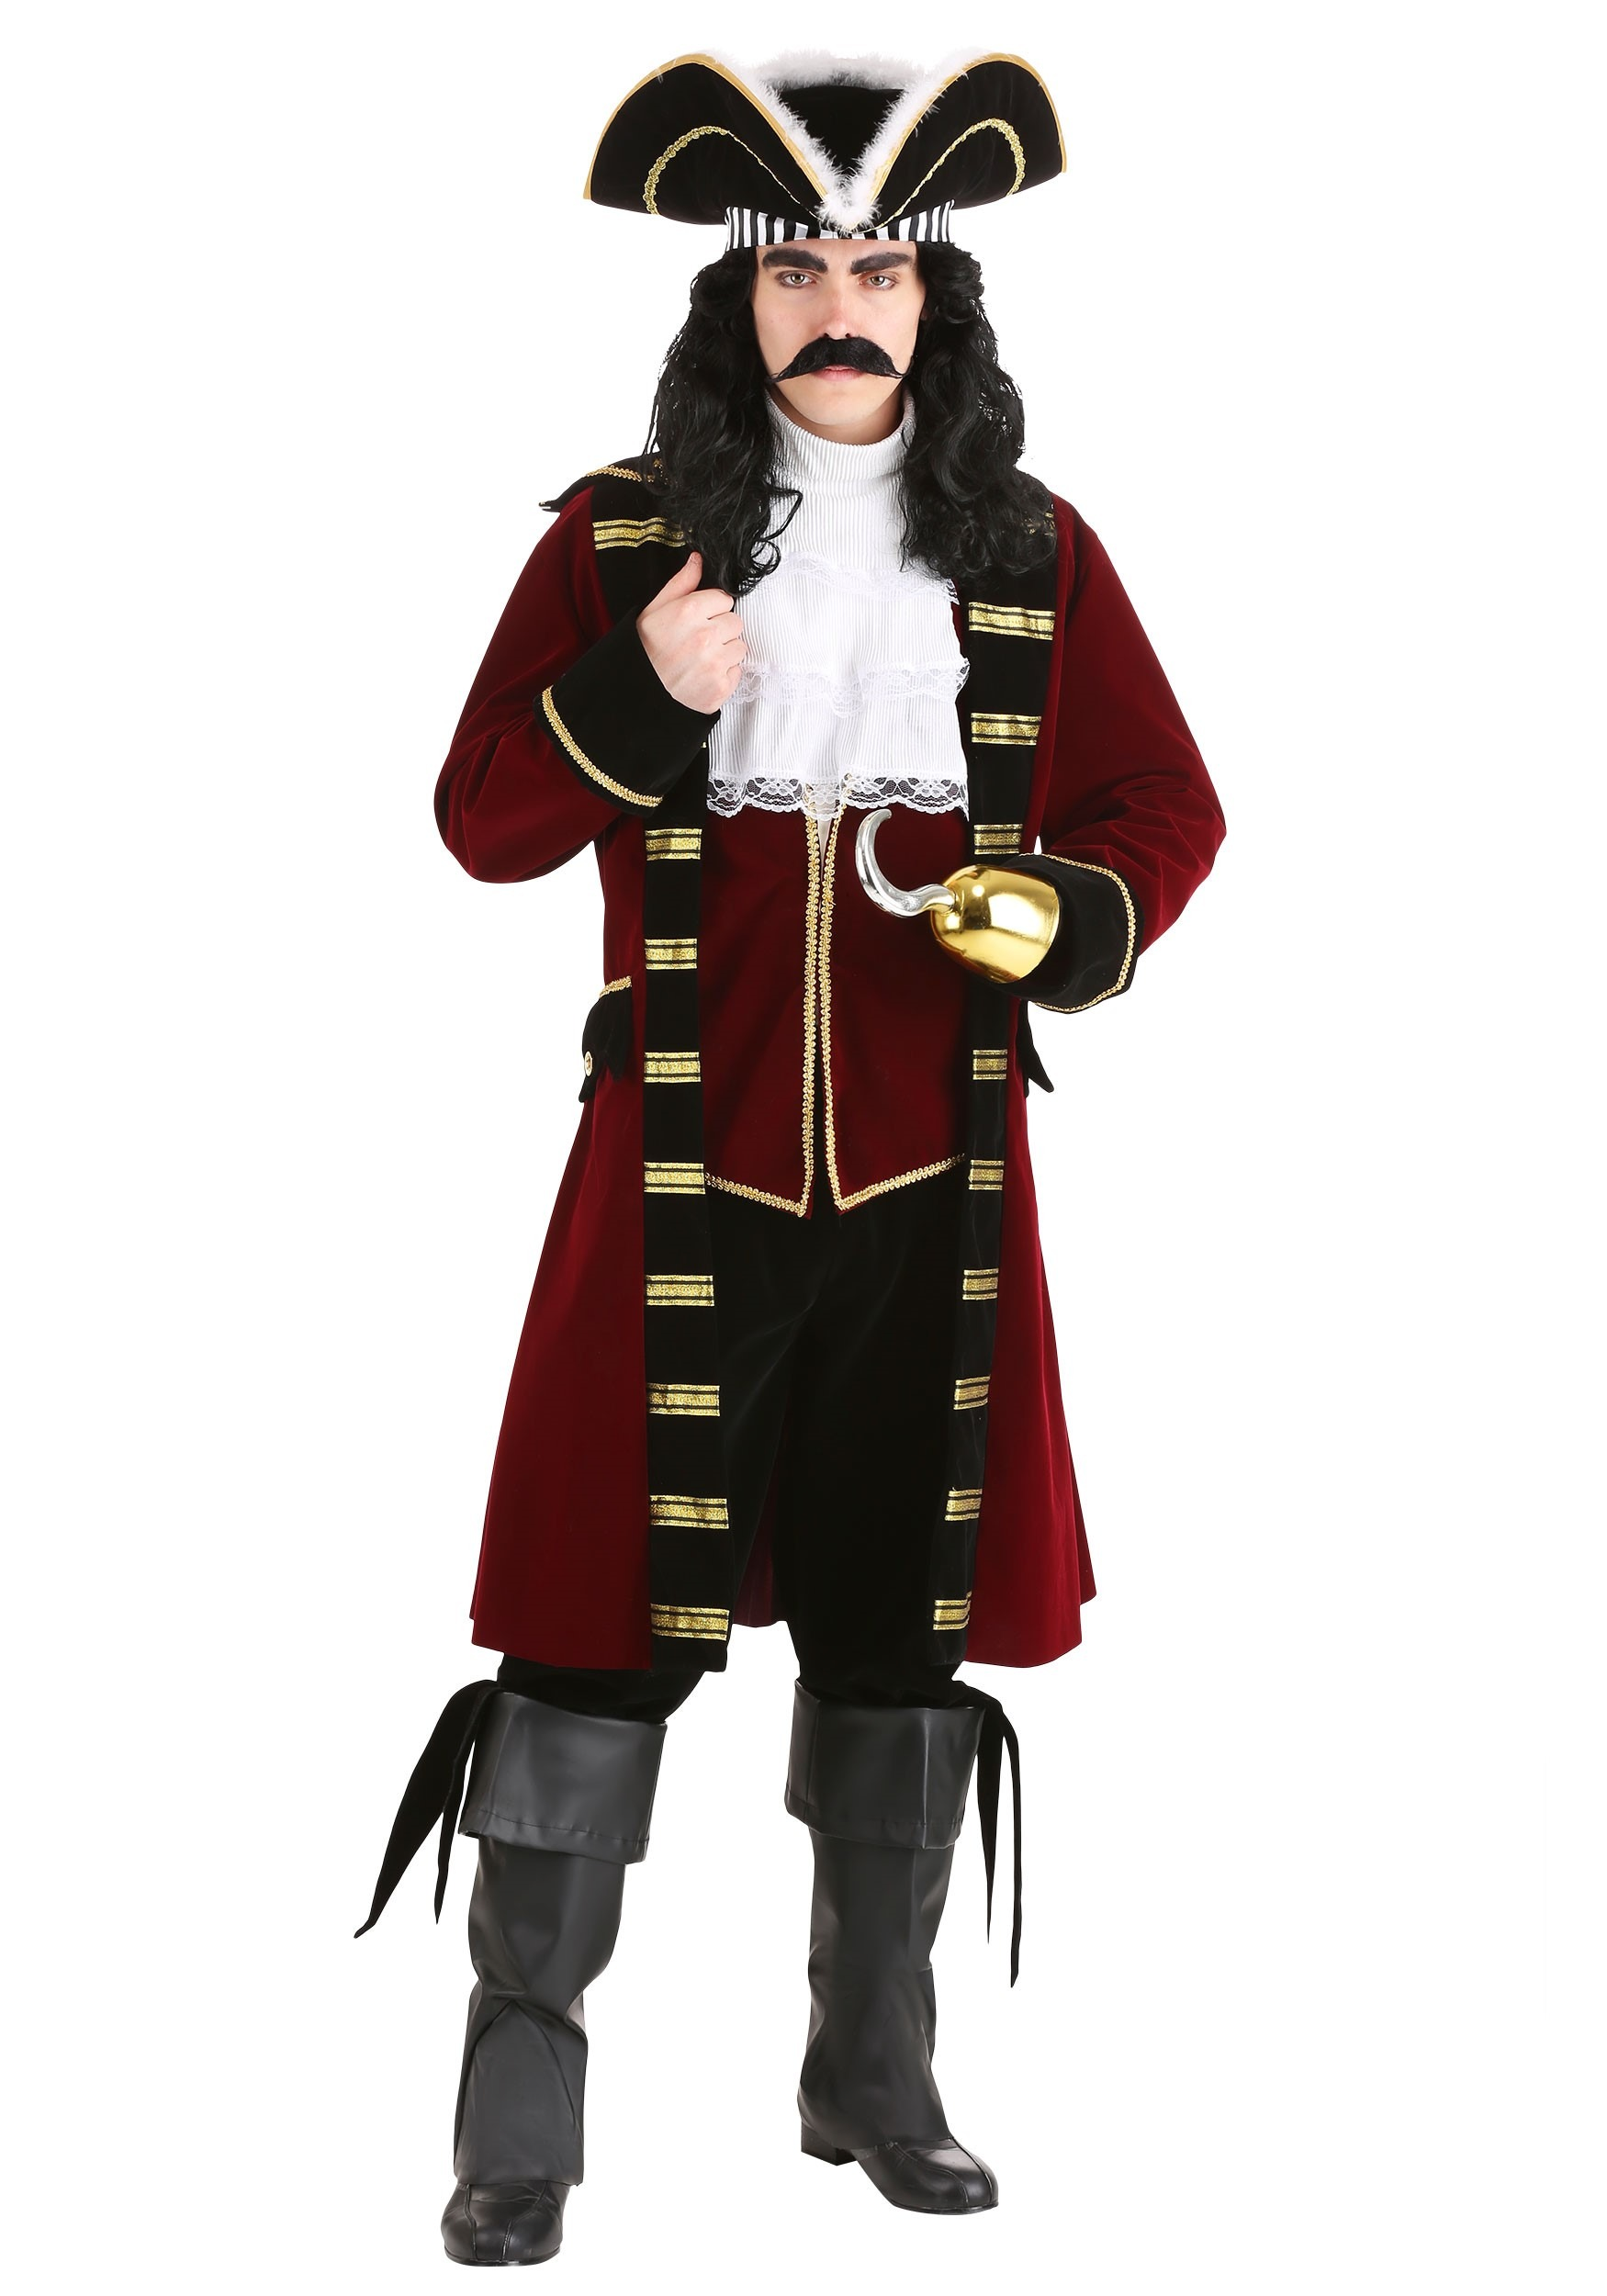 Captain Hook Deluxe Costume - Adult Captain Hook Disney Costumes 66f15fdef157